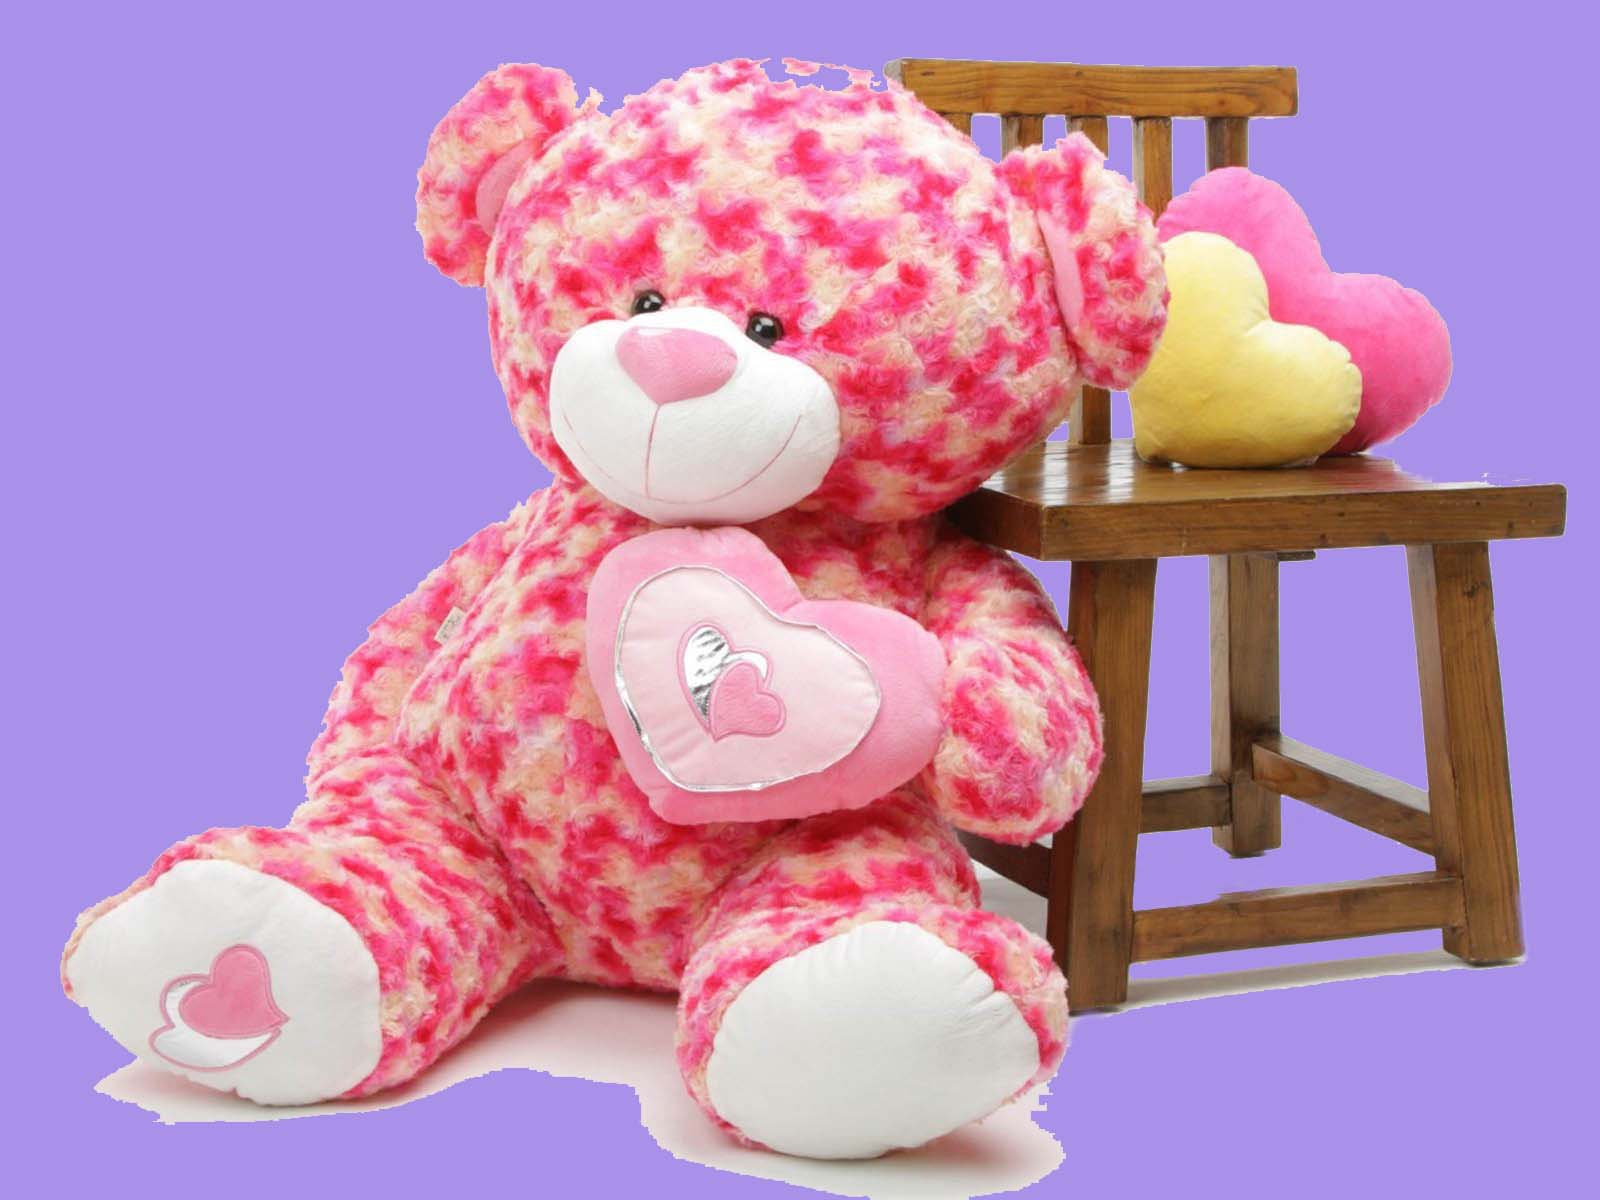 Lovely and beautiful teddy bear wallpapers free love images of love pink teddy bear cute image voltagebd Image collections